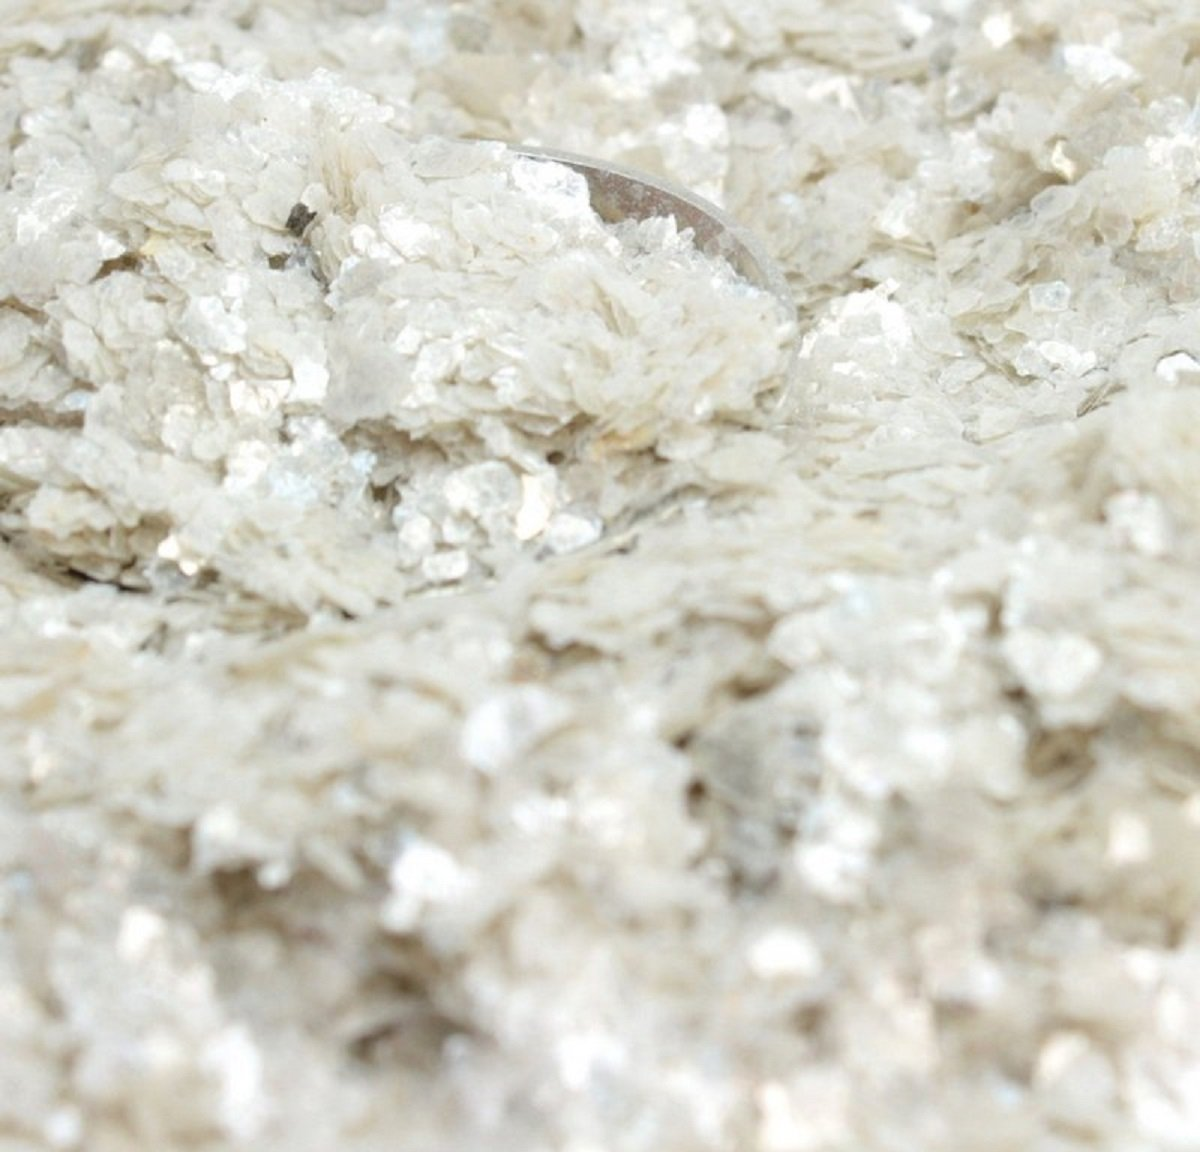 Meyer Imports Natural Mica Flakes - Cream White - 4 oz - #311-4347 by Meyer Imports (Image #1)